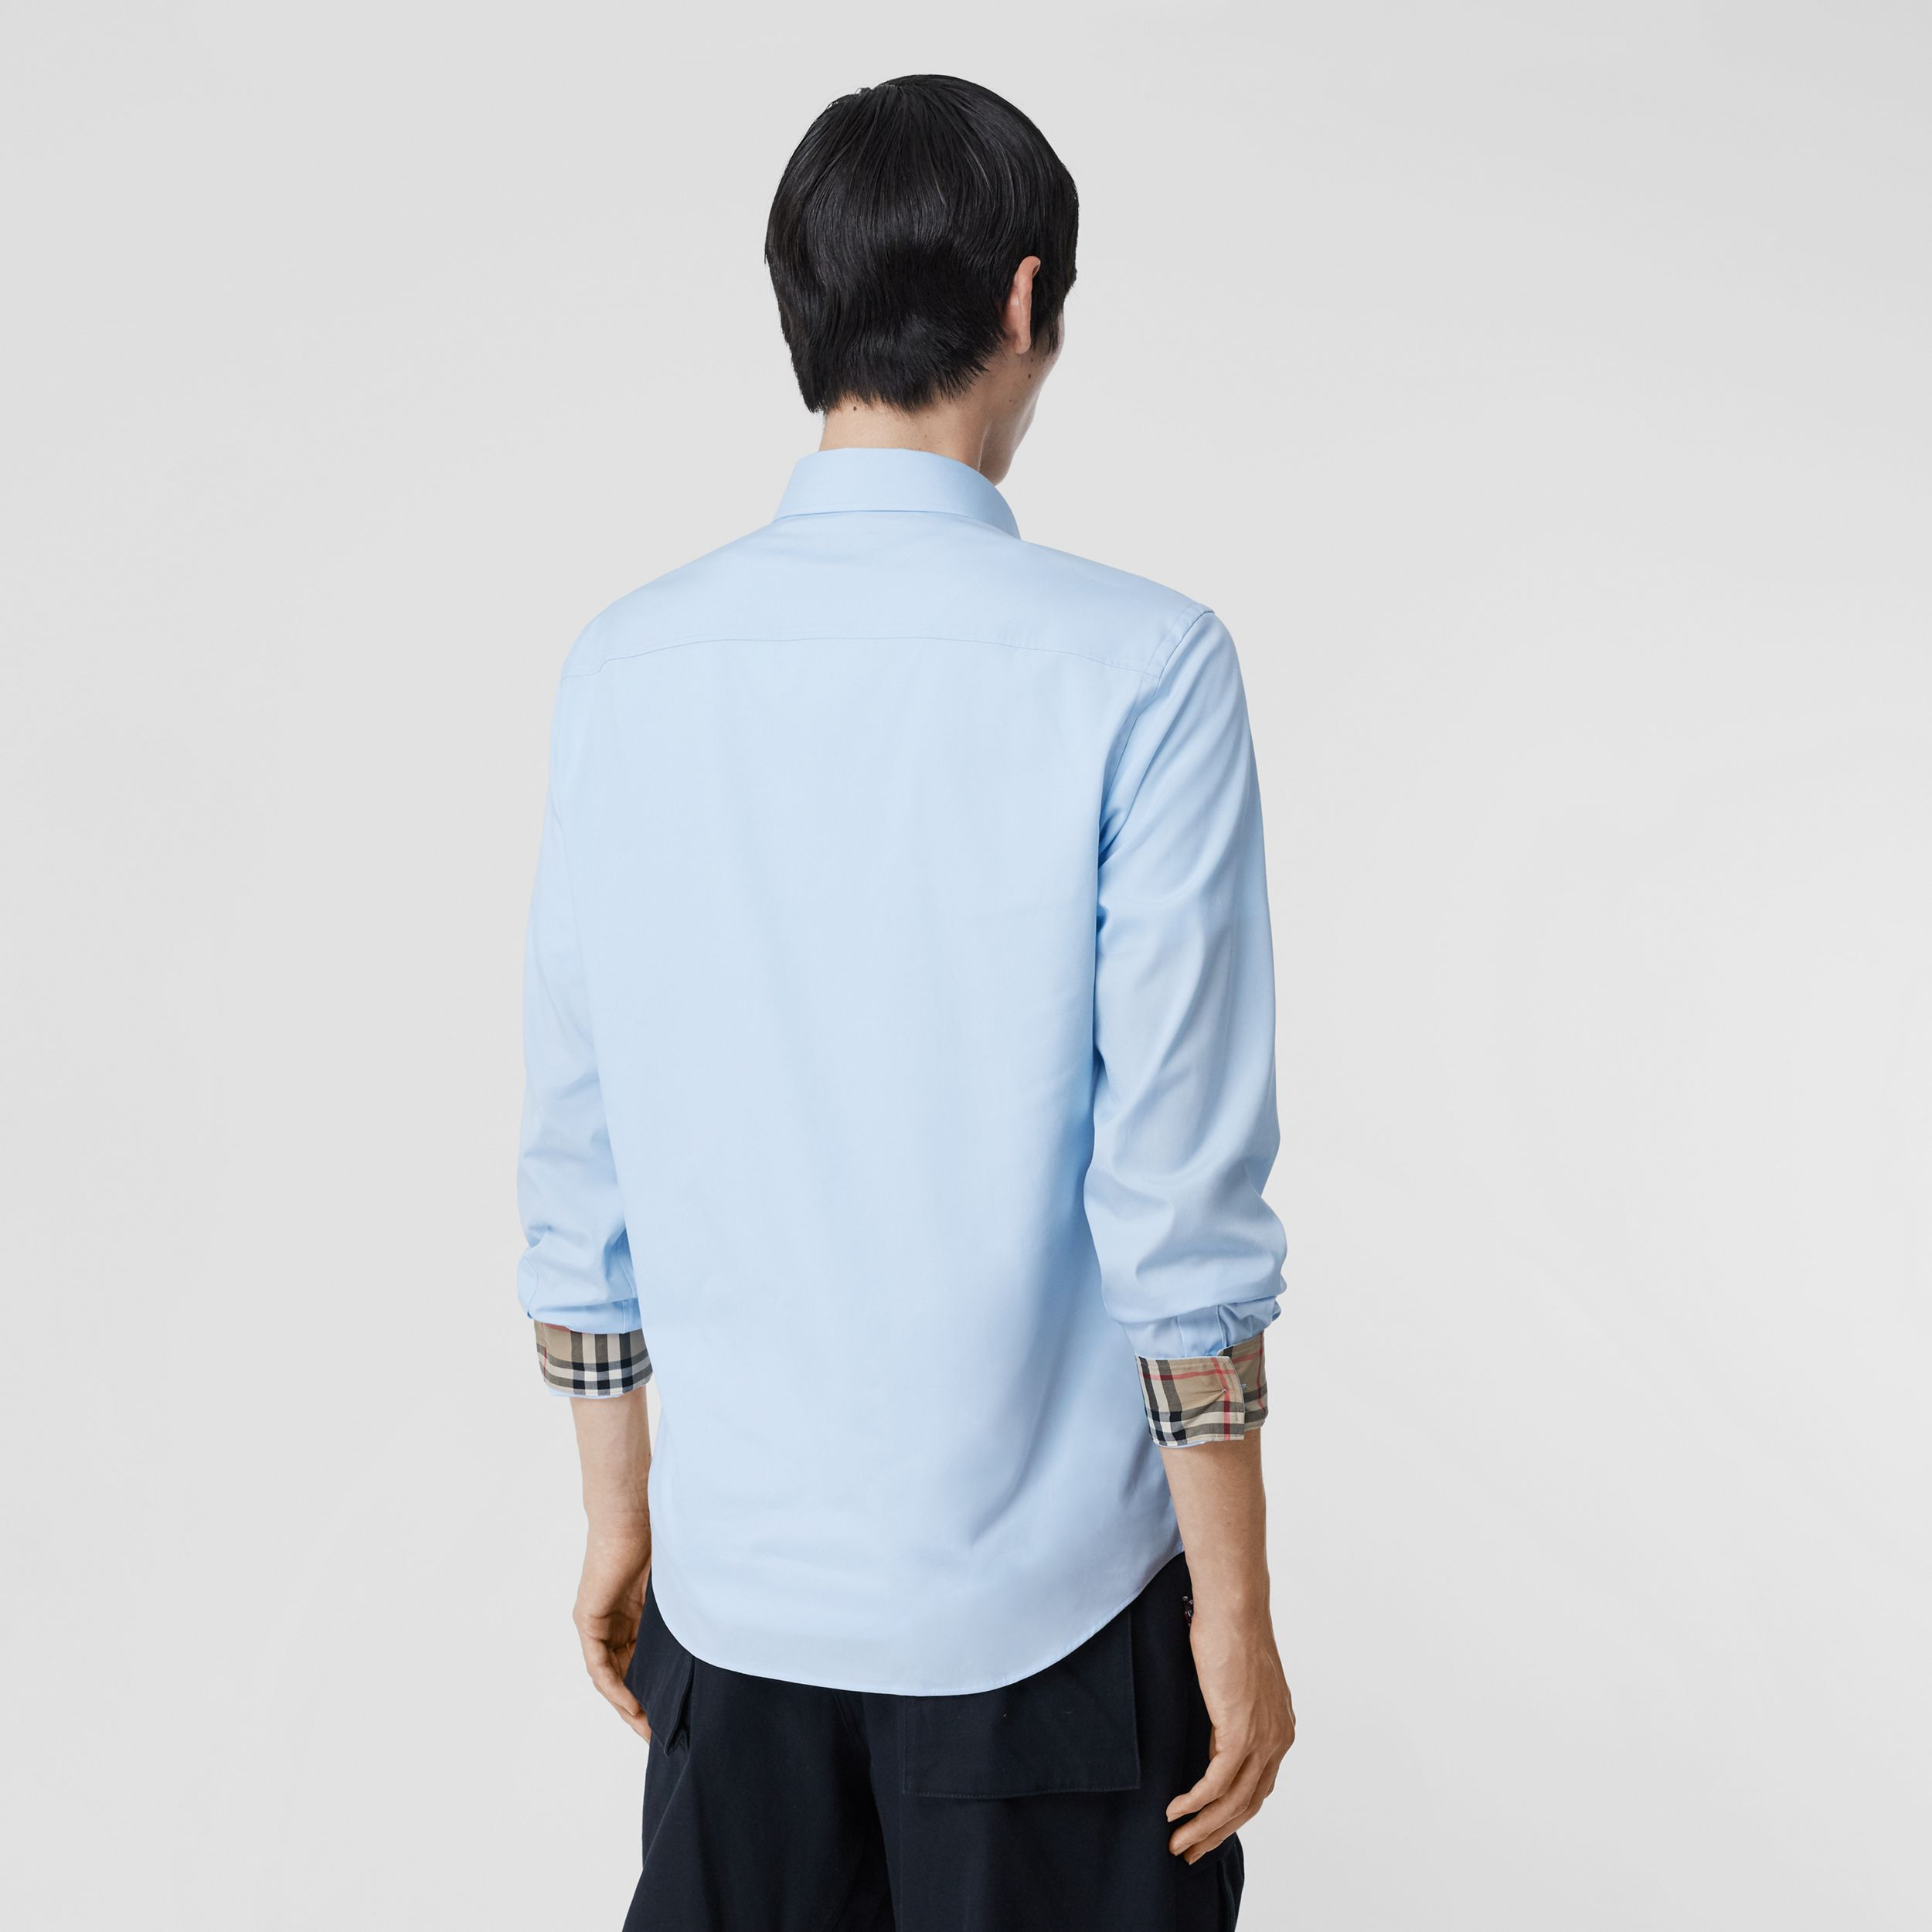 Classic Fit Embroidered EKD Cotton Oxford Shirt in Sky Blue - Men | Burberry - 3